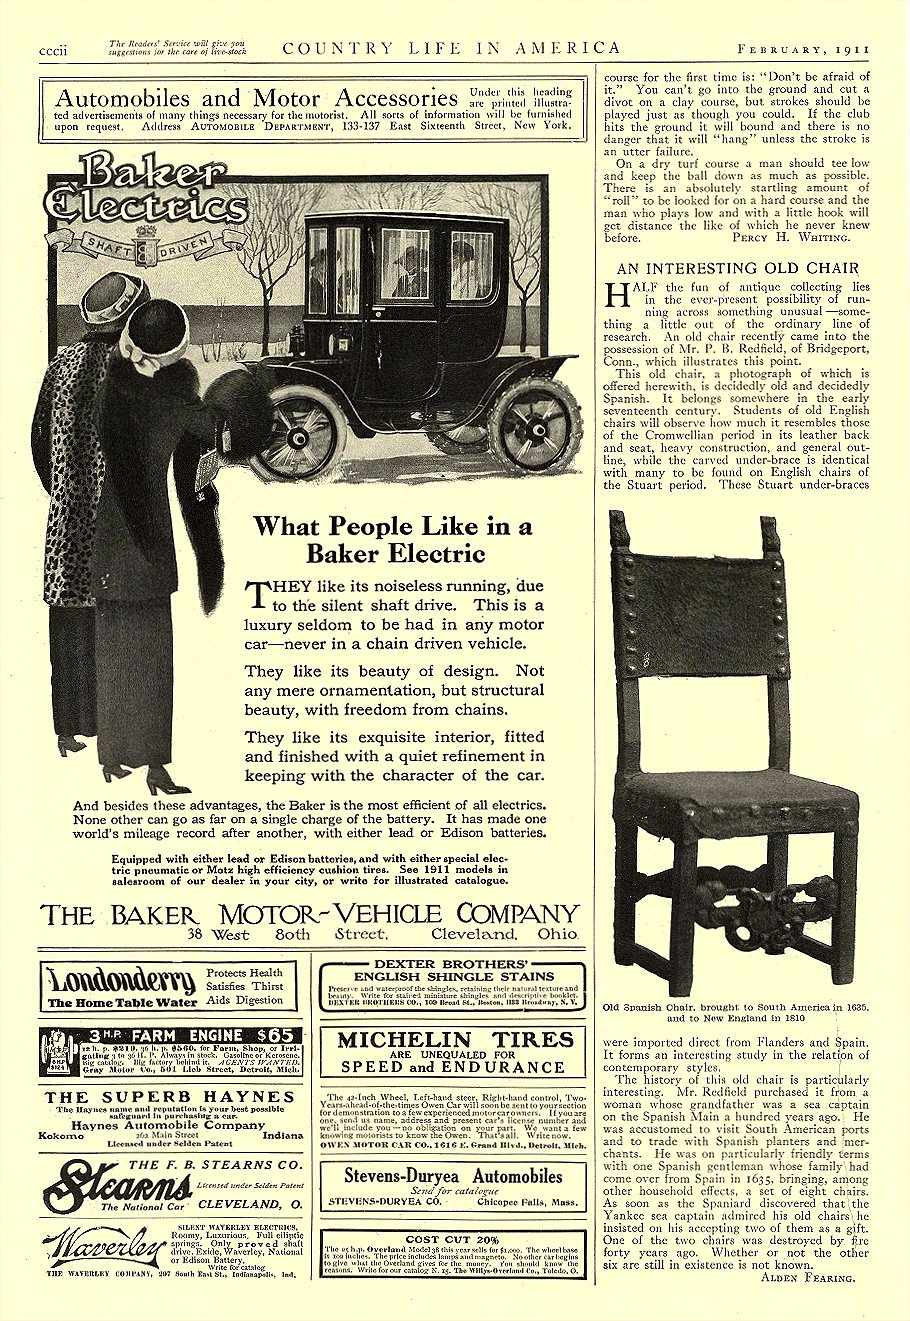 1911 2 BAKER Electric What People Like in a Baker Electric THE BAKER MOTOR-VEHICLE COMPANY Cleveland, OHIO Country Life In America February 1911 9.5″x14.25″ page cccii